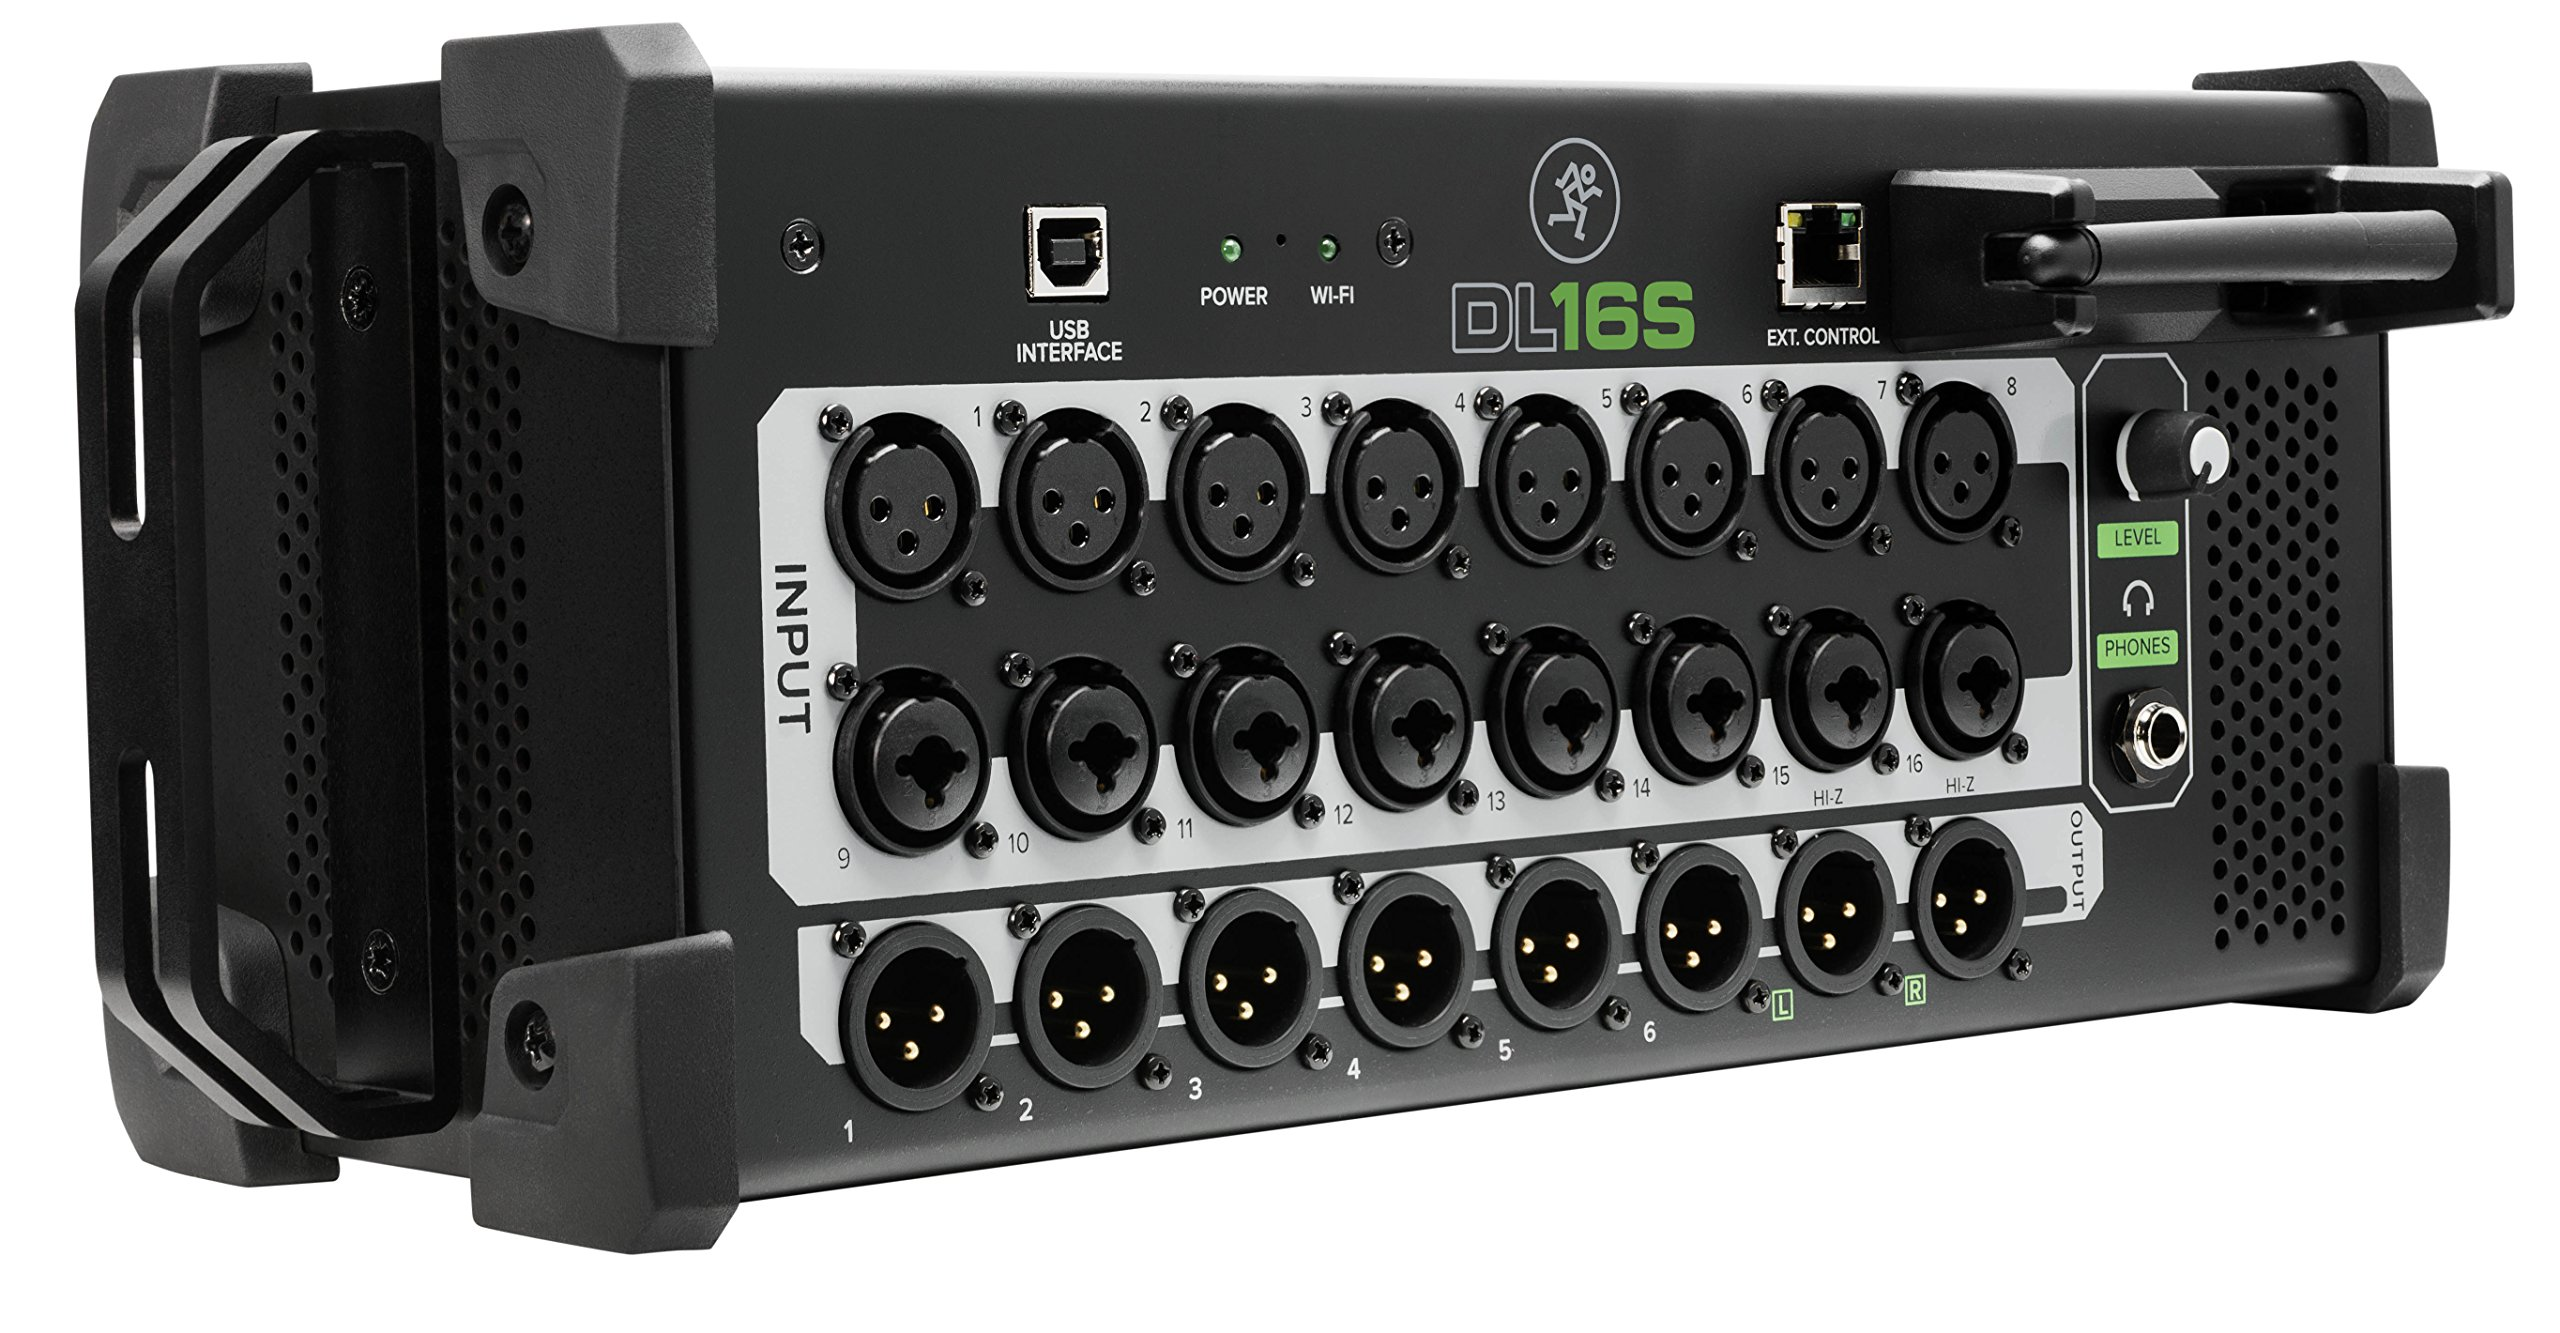 Mackie DL Series Mixer - Unpowered 16-channel DL16S